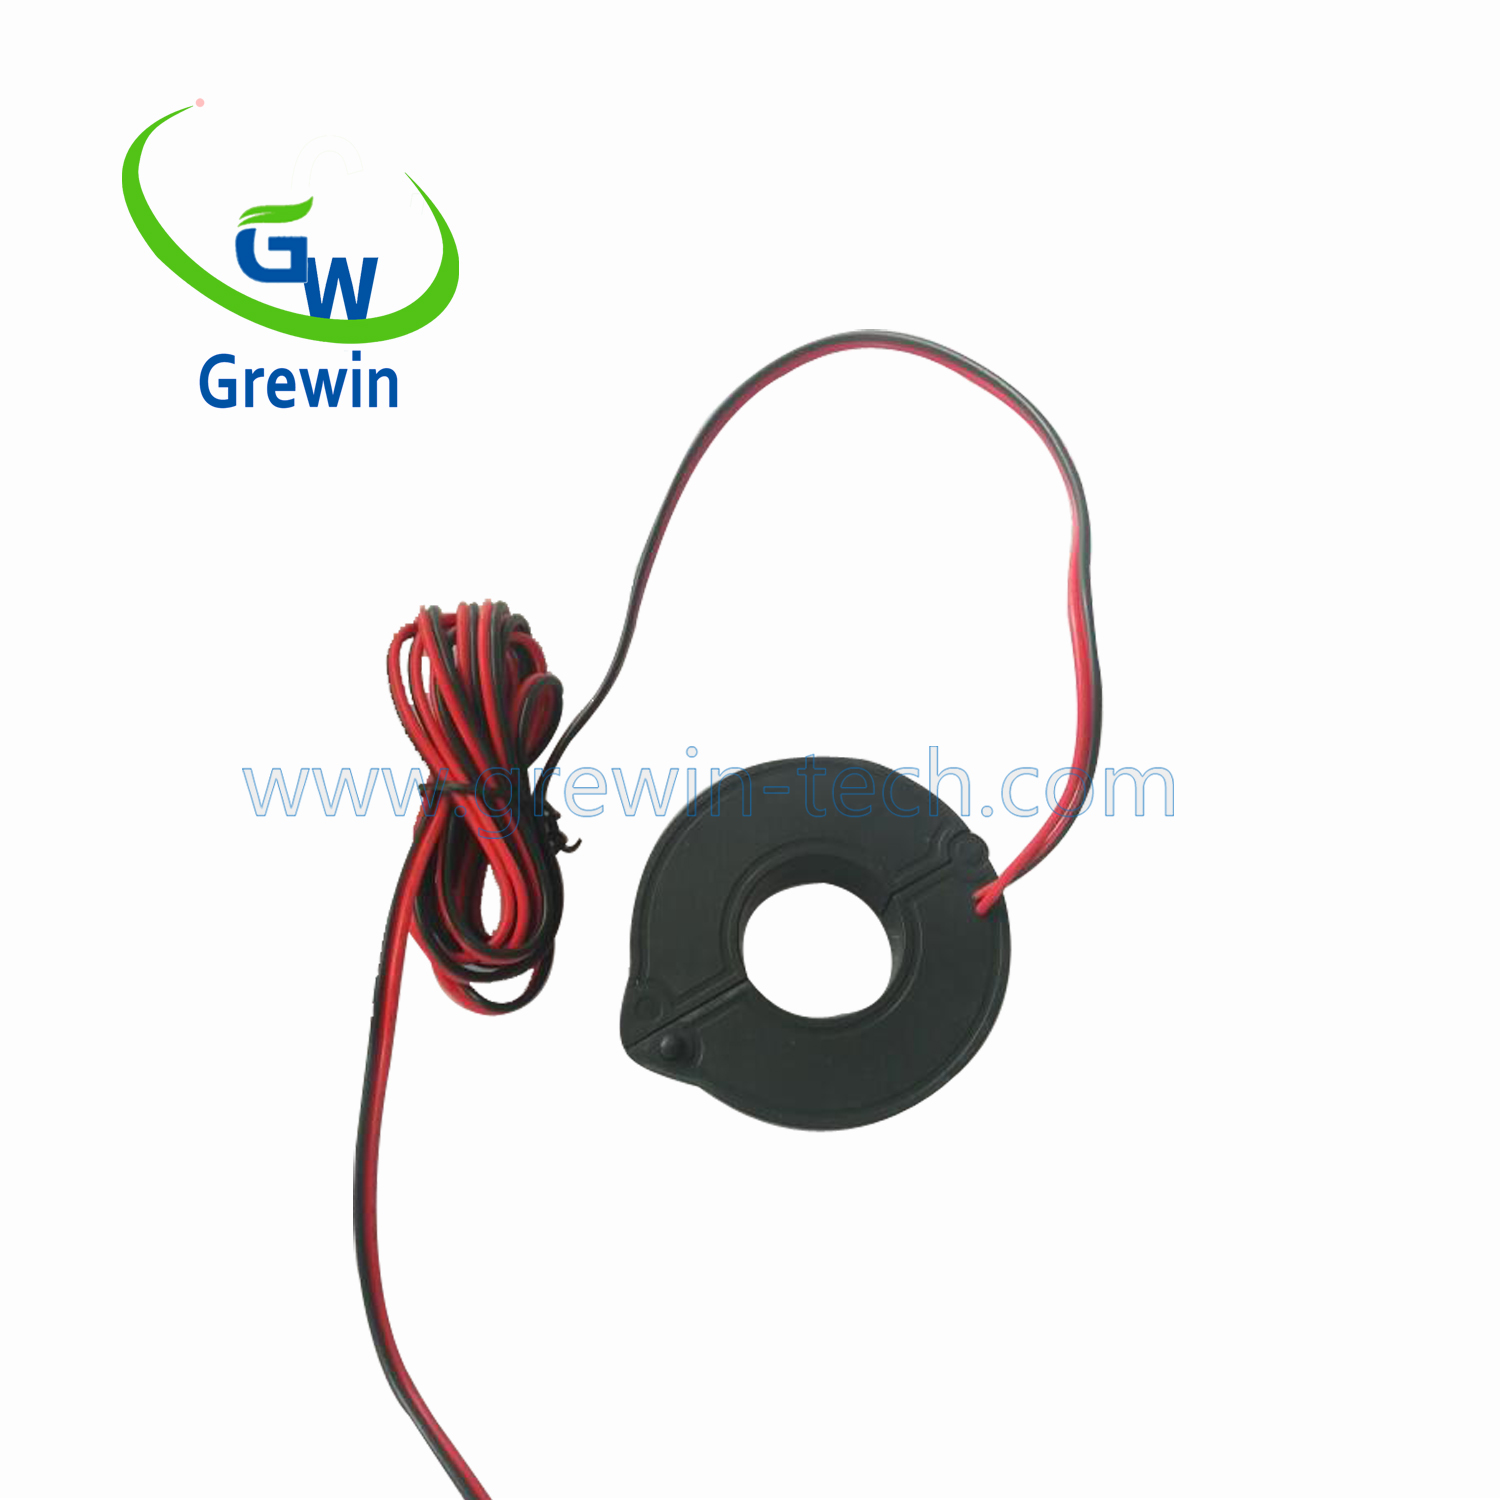 rated input 25A 0.1 accuracy output 5mA easy to install split core current transformer for electrical wiring and equipment